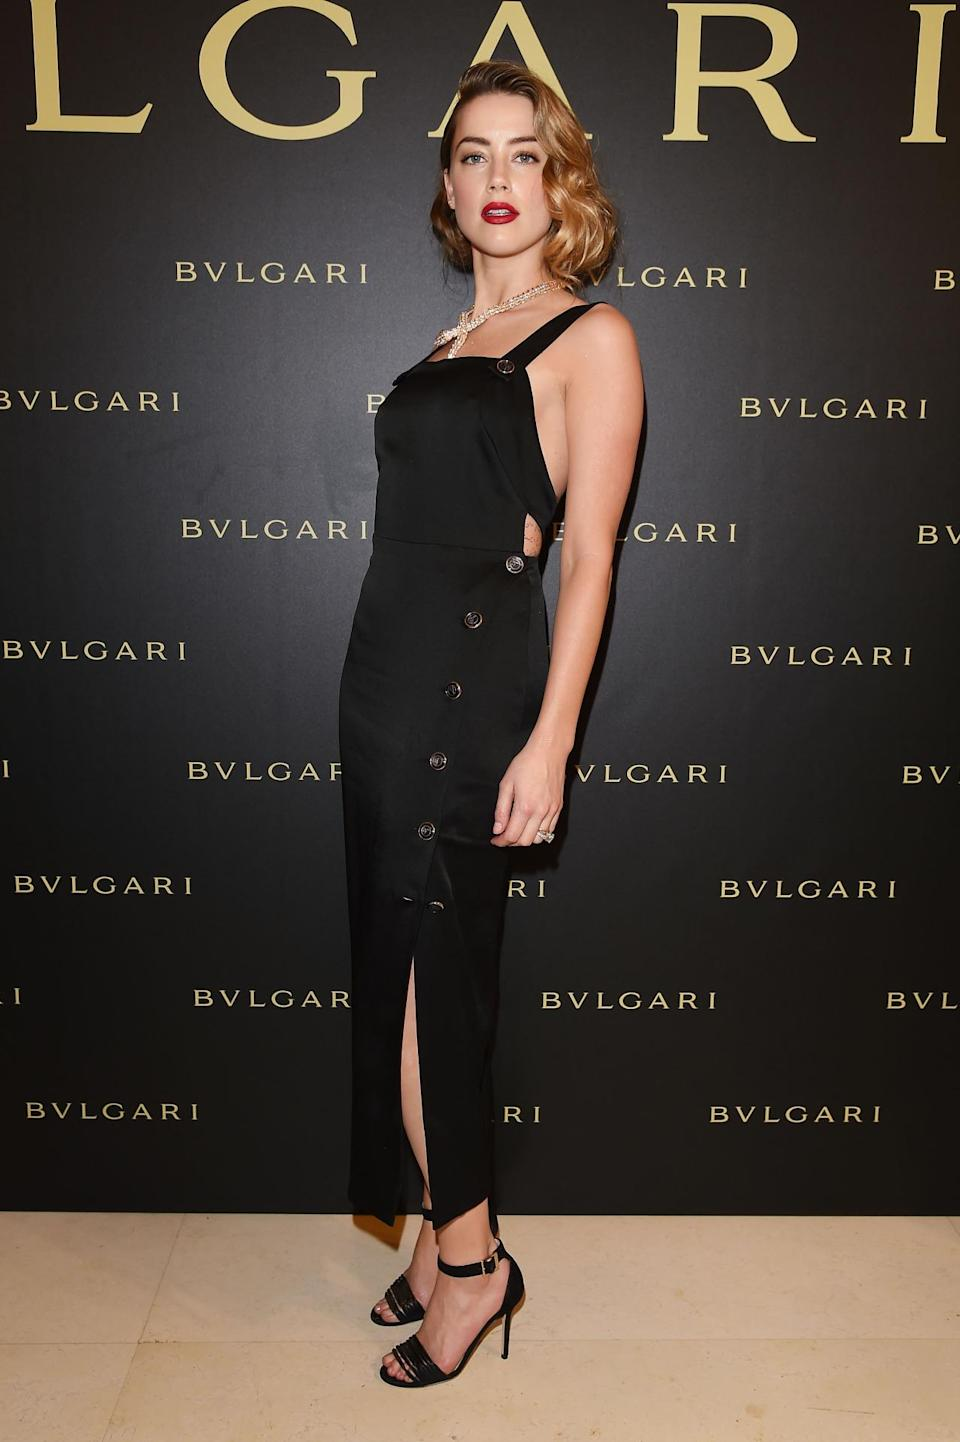 <p>Amber Heard in Temperley London LBD dress.</p><p>After a long weekend of red, white and blues, it seems like this weeks best dressed are having a bit of a black and white moment. Case in point: actress Amber Heard, who attended the Buglari cocktail party in a figure-hugging LBD from Temperley London, topped off with a sparkling signature serpent necklace.<br><br></p>